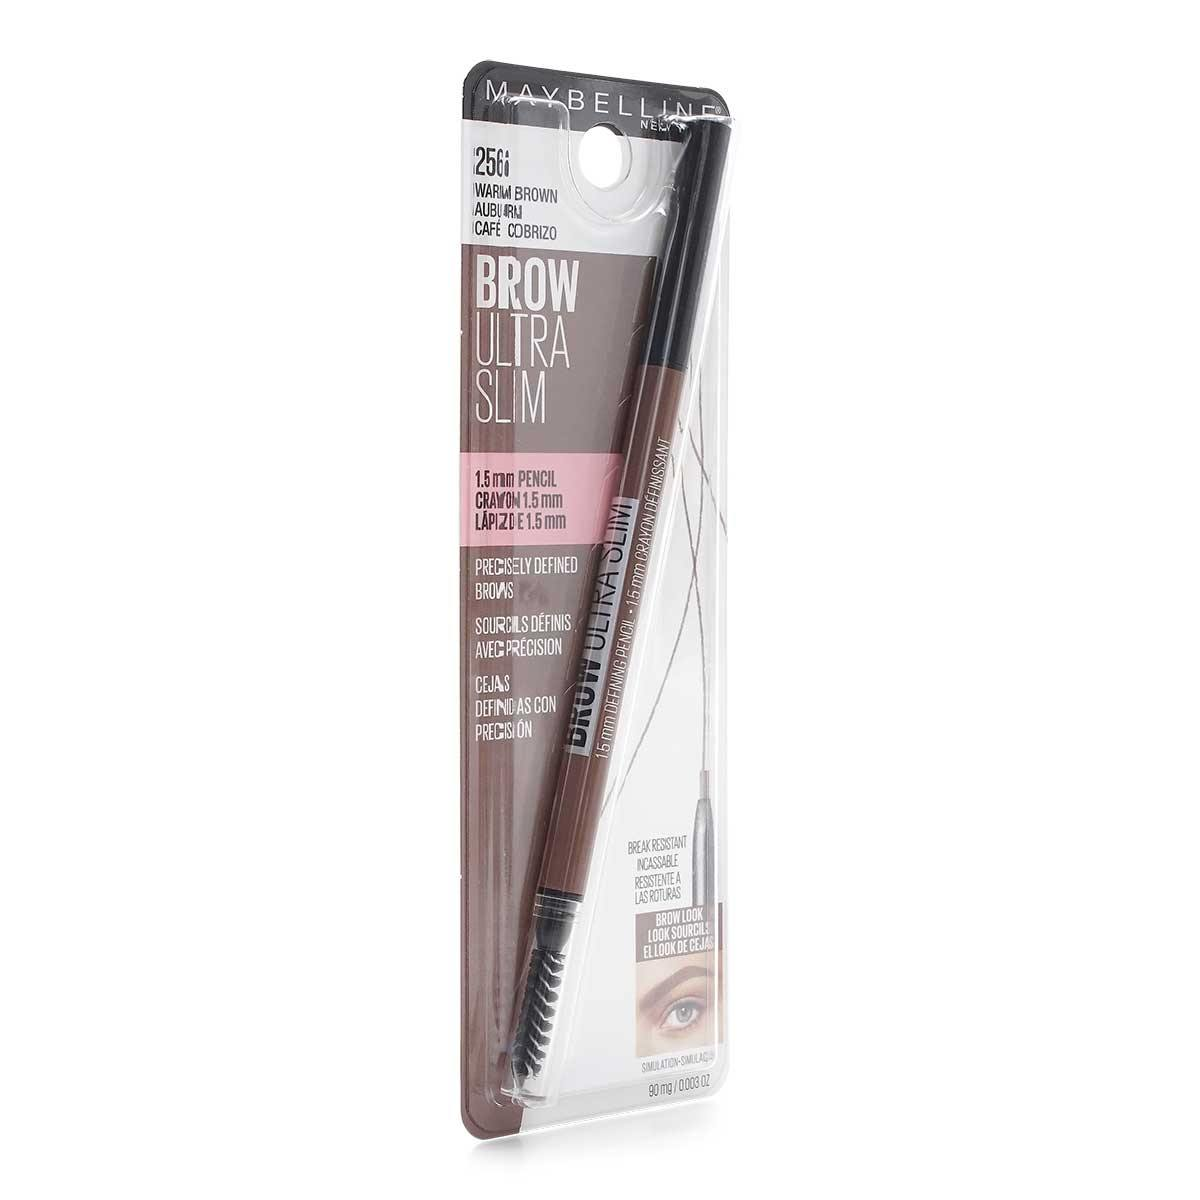 MAYBELLINE BROW ULTRA SLIM LINER - WARM BROWN (24/cs)